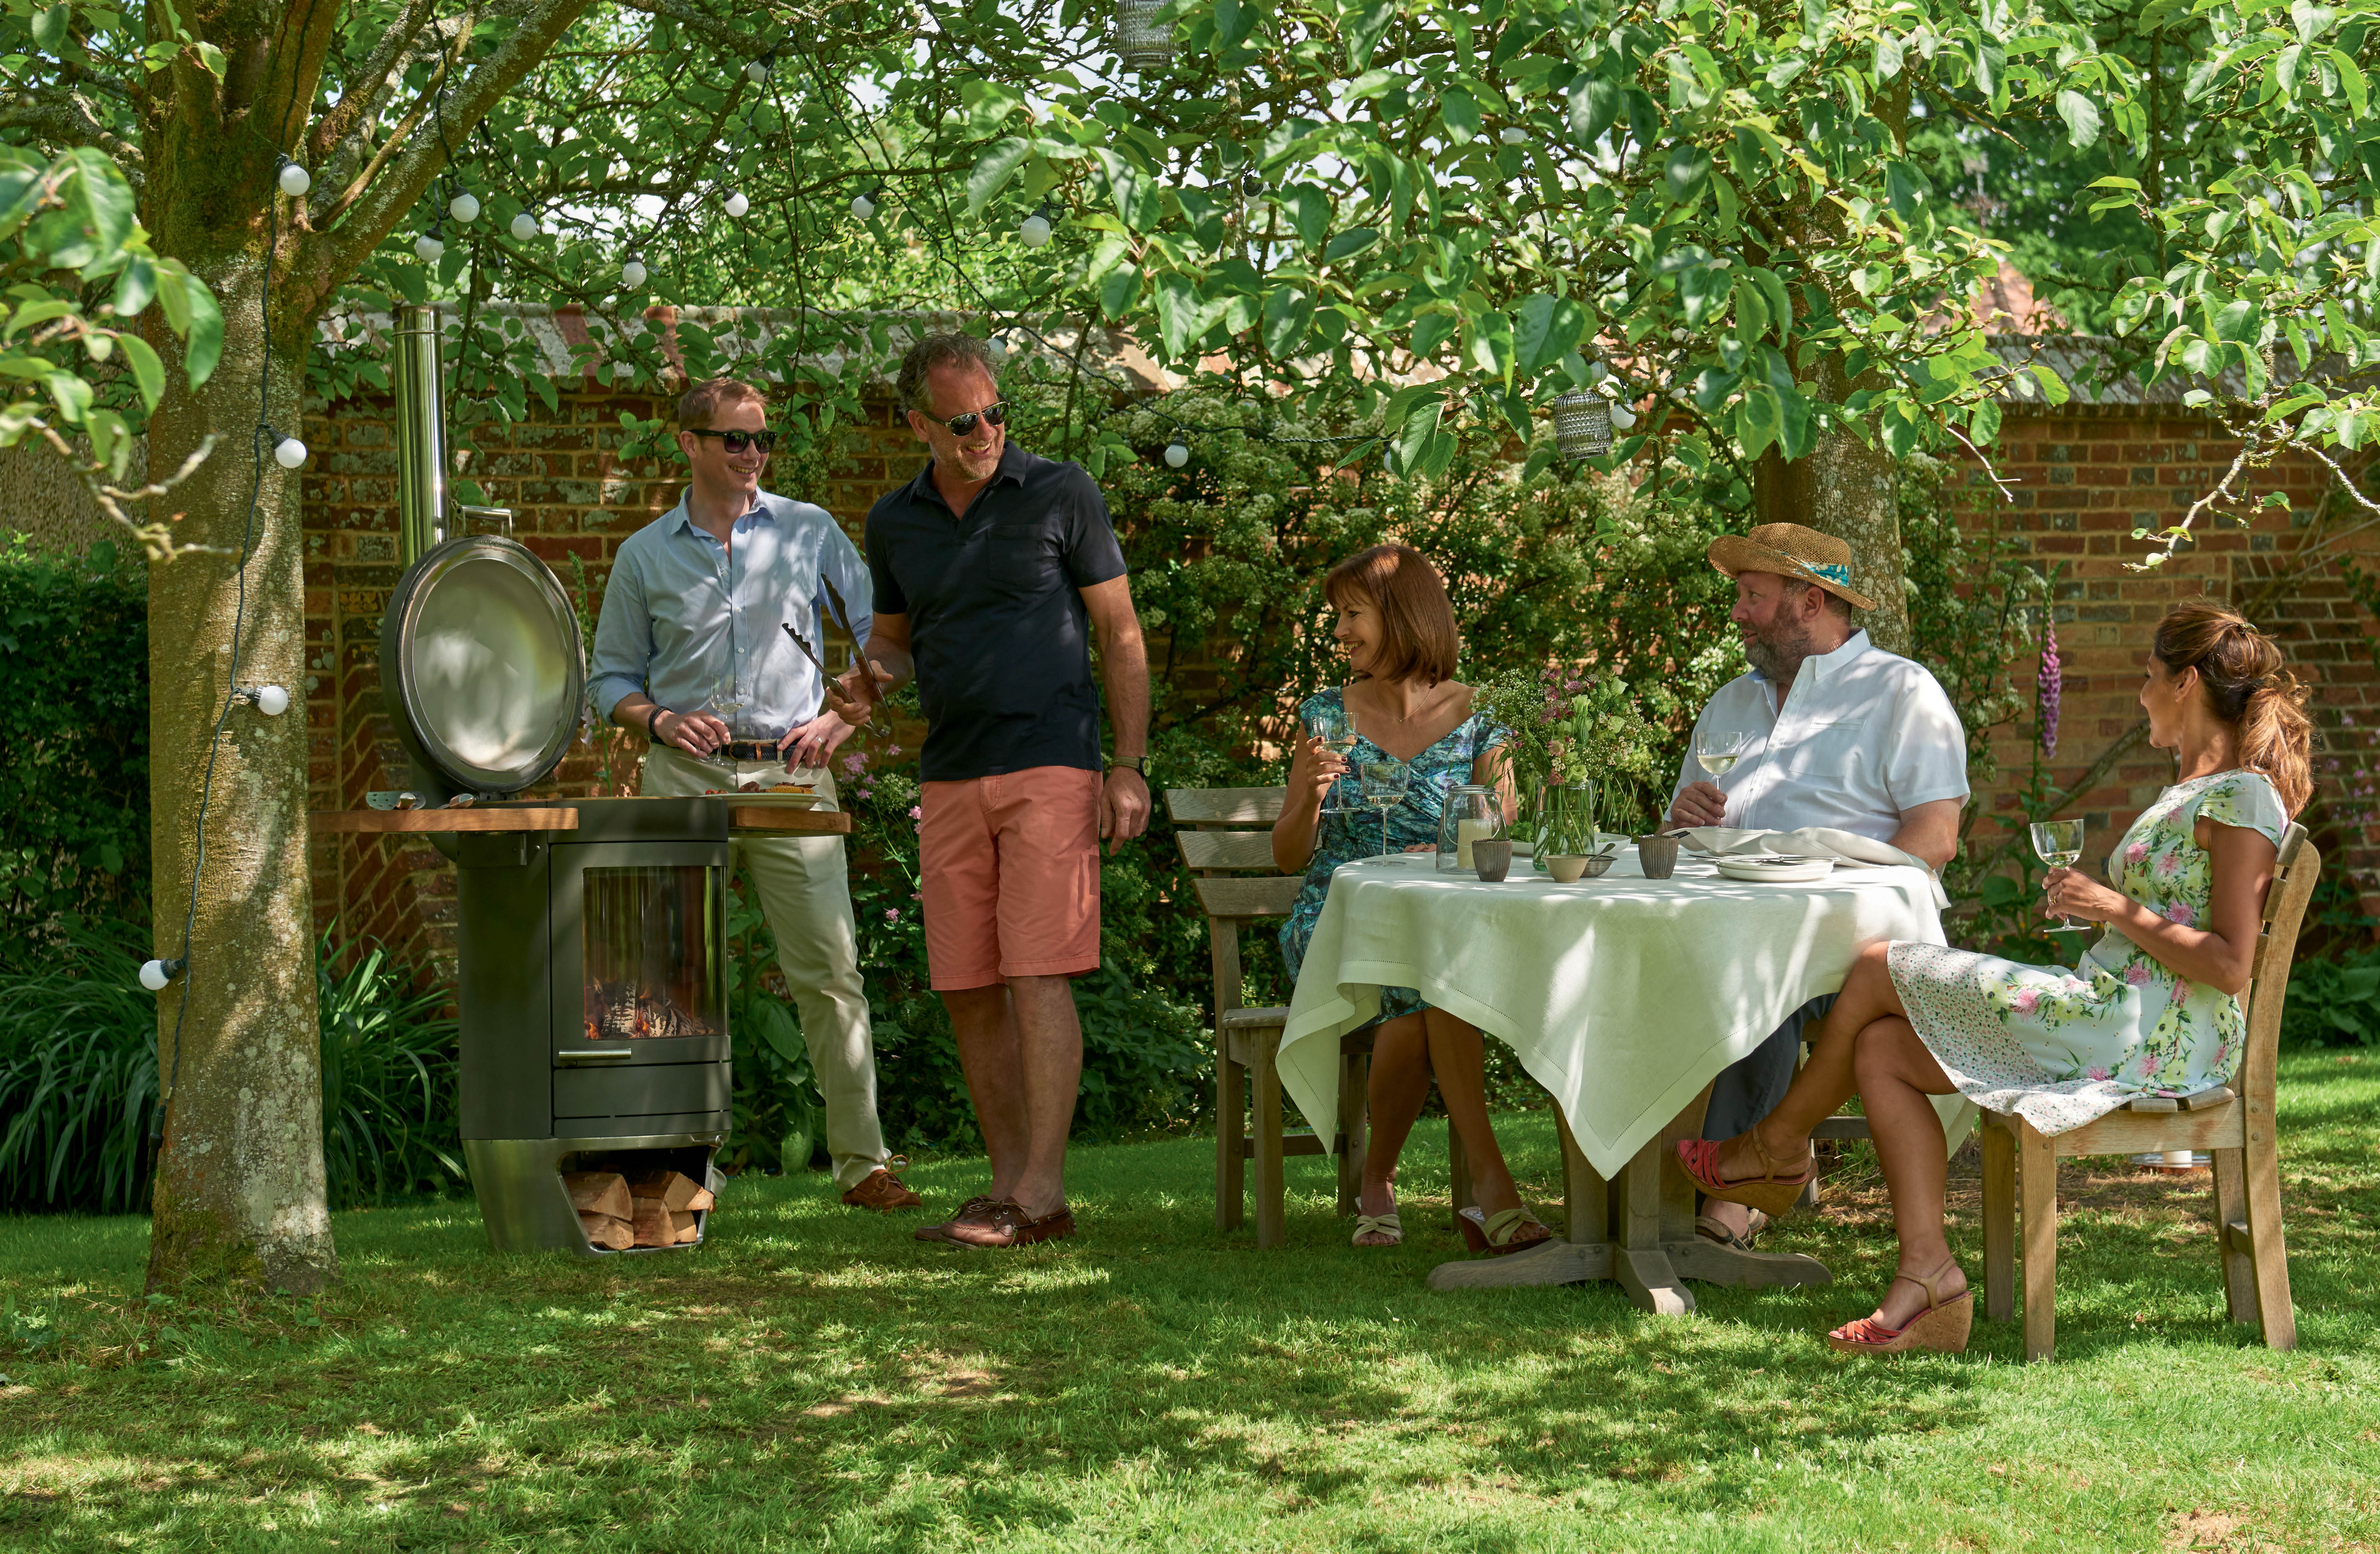 barbecue, Barbecue: How to create the perfect party atmosphere